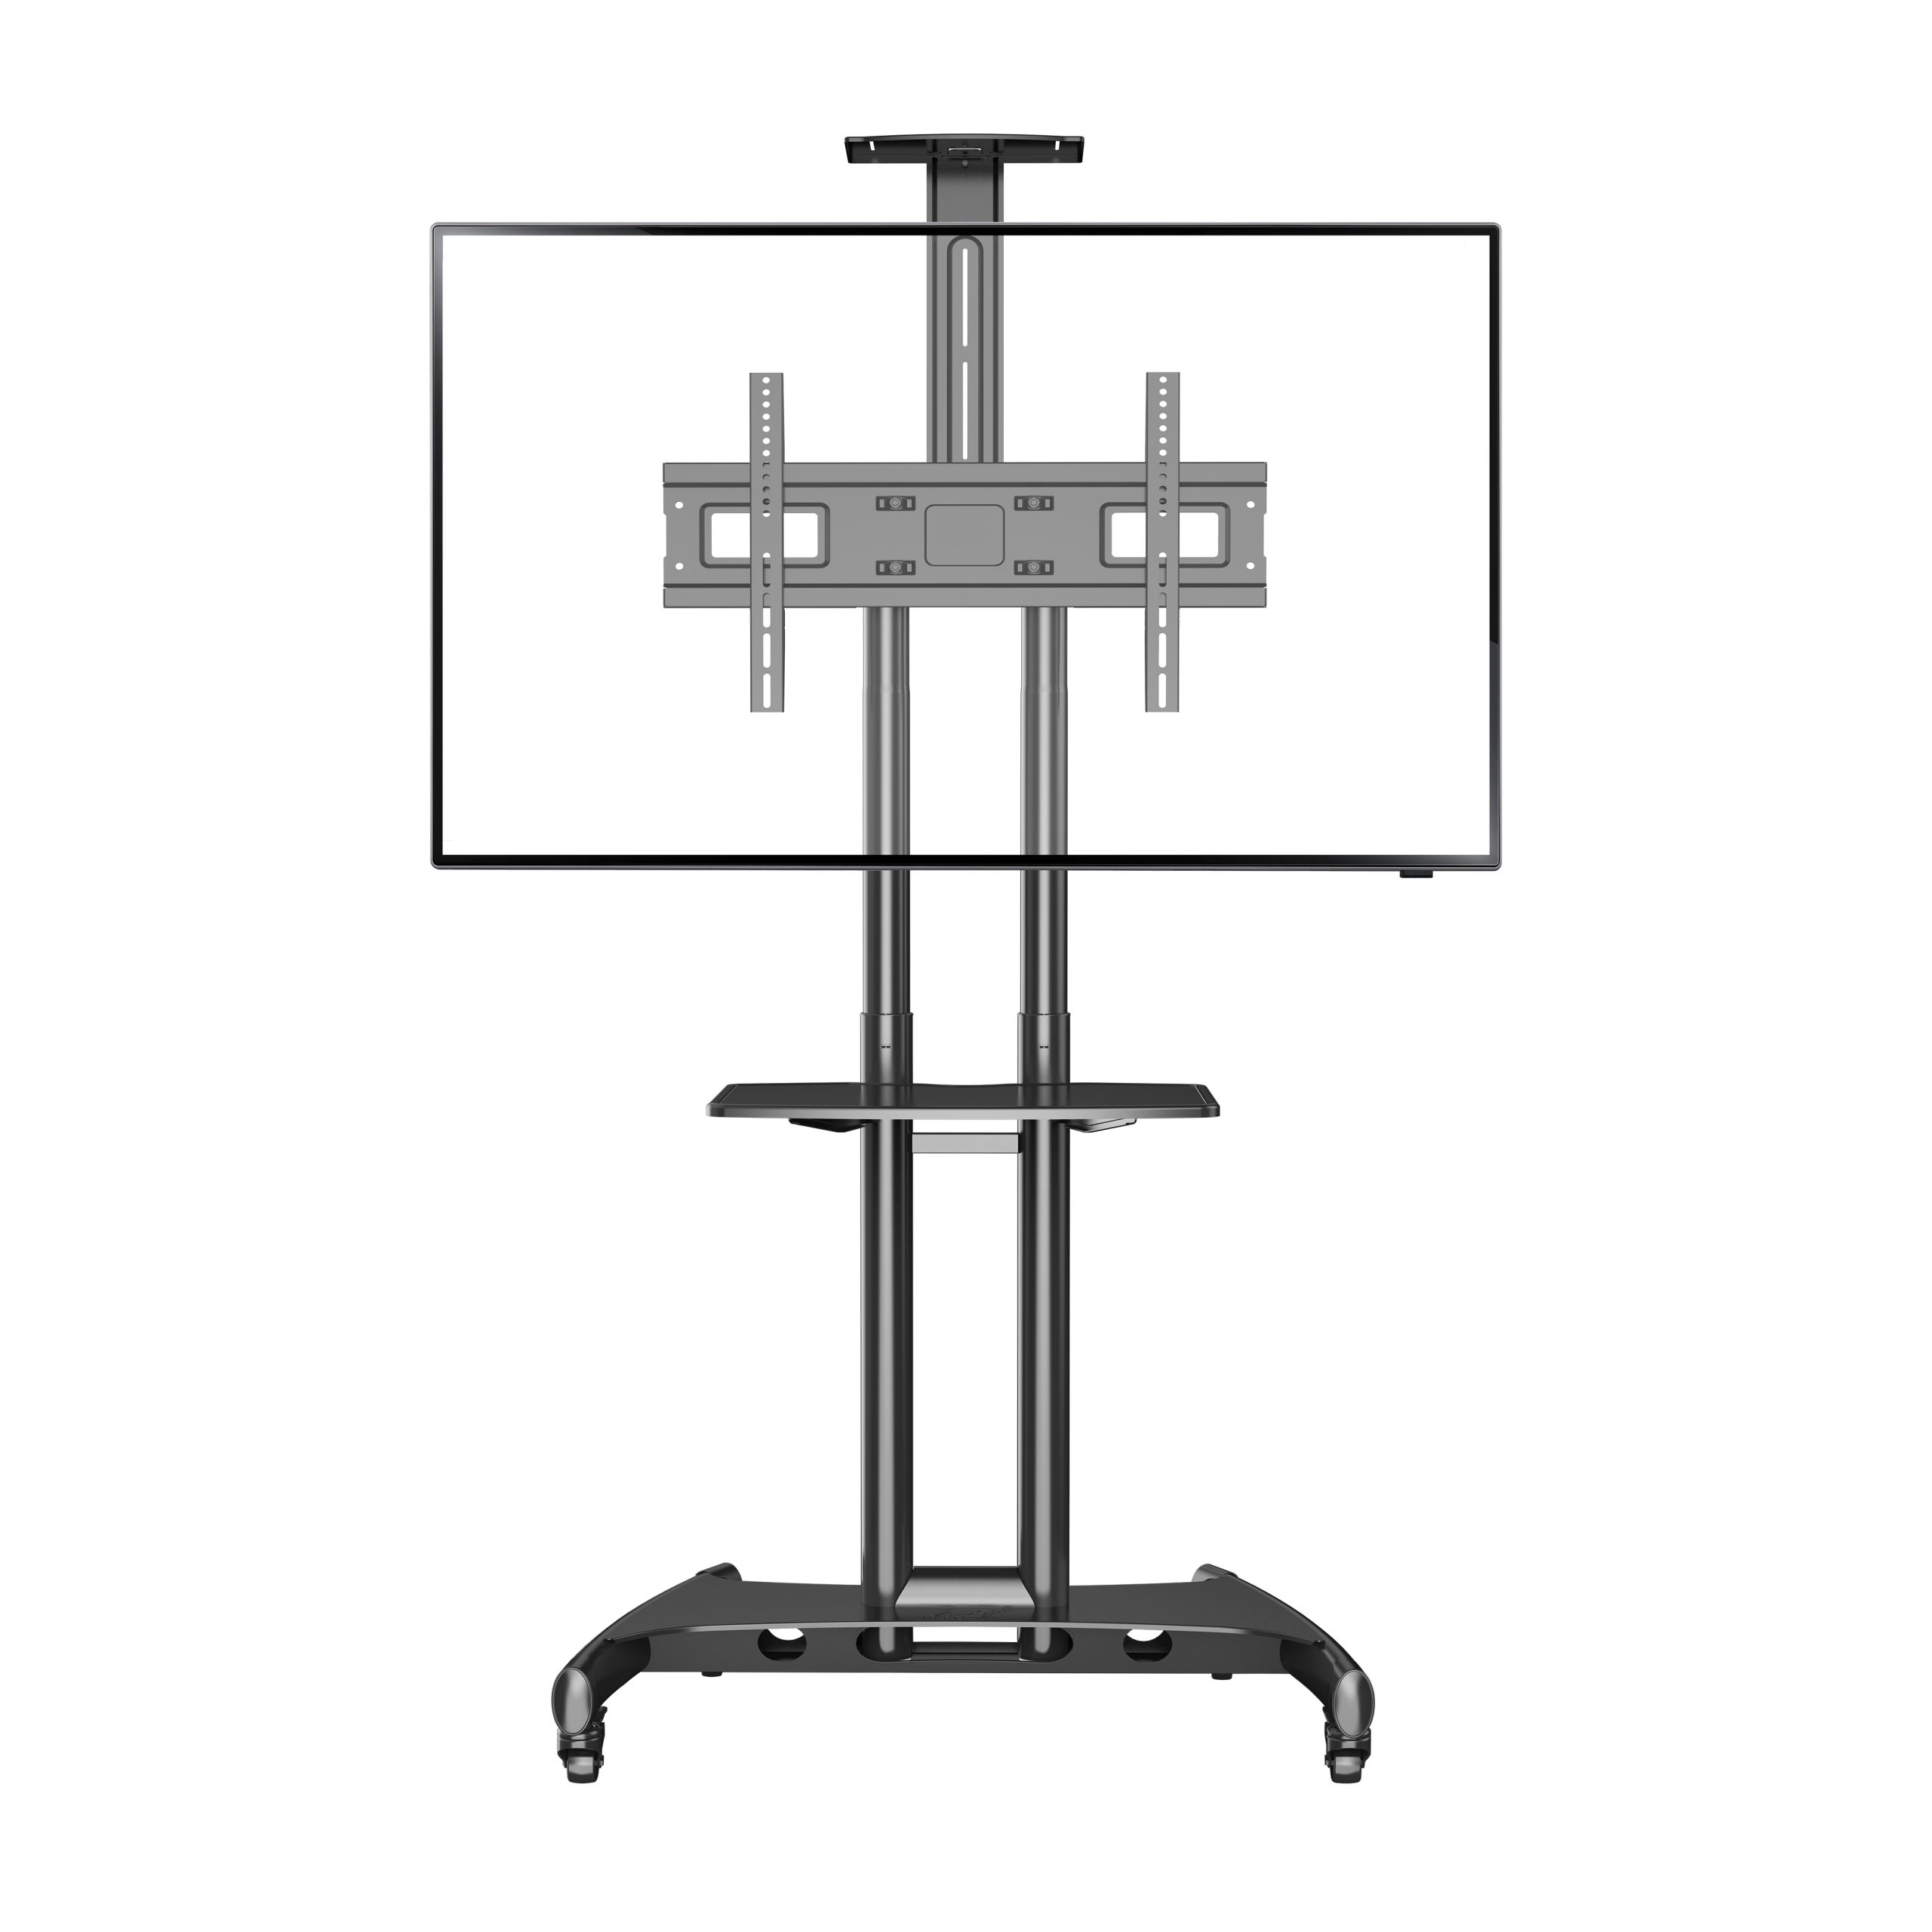 Boost Industries AVC3265ii Universal Multi-Functional Mobile TV Cart Stand for 32″ to 65″ TVs